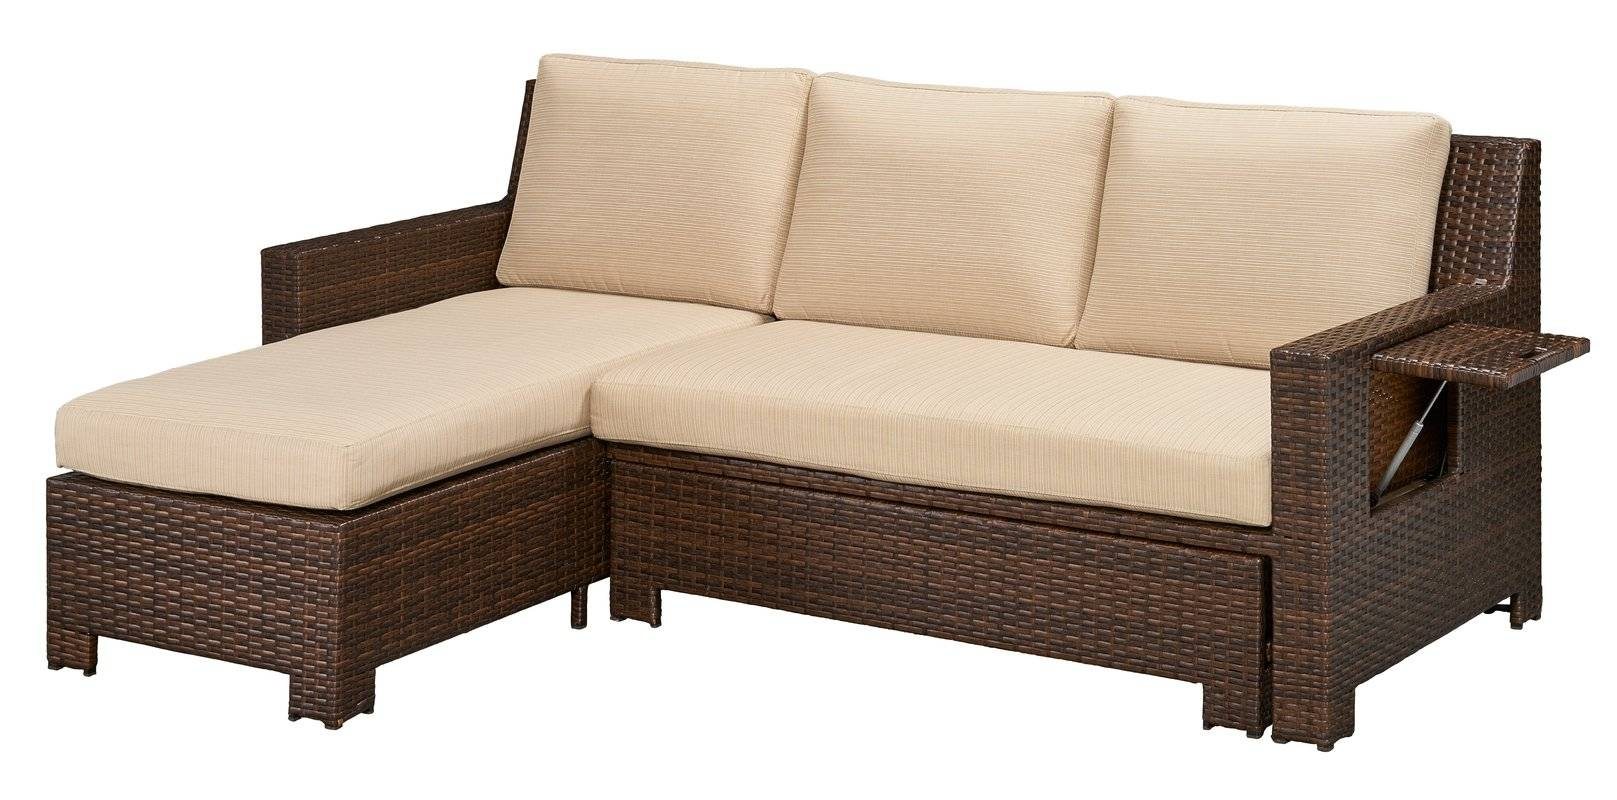 Darby Home Co Ferndale Deck Convertible Sectional Sofa With with Convertible Sectional Sofas (Image 5 of 30)